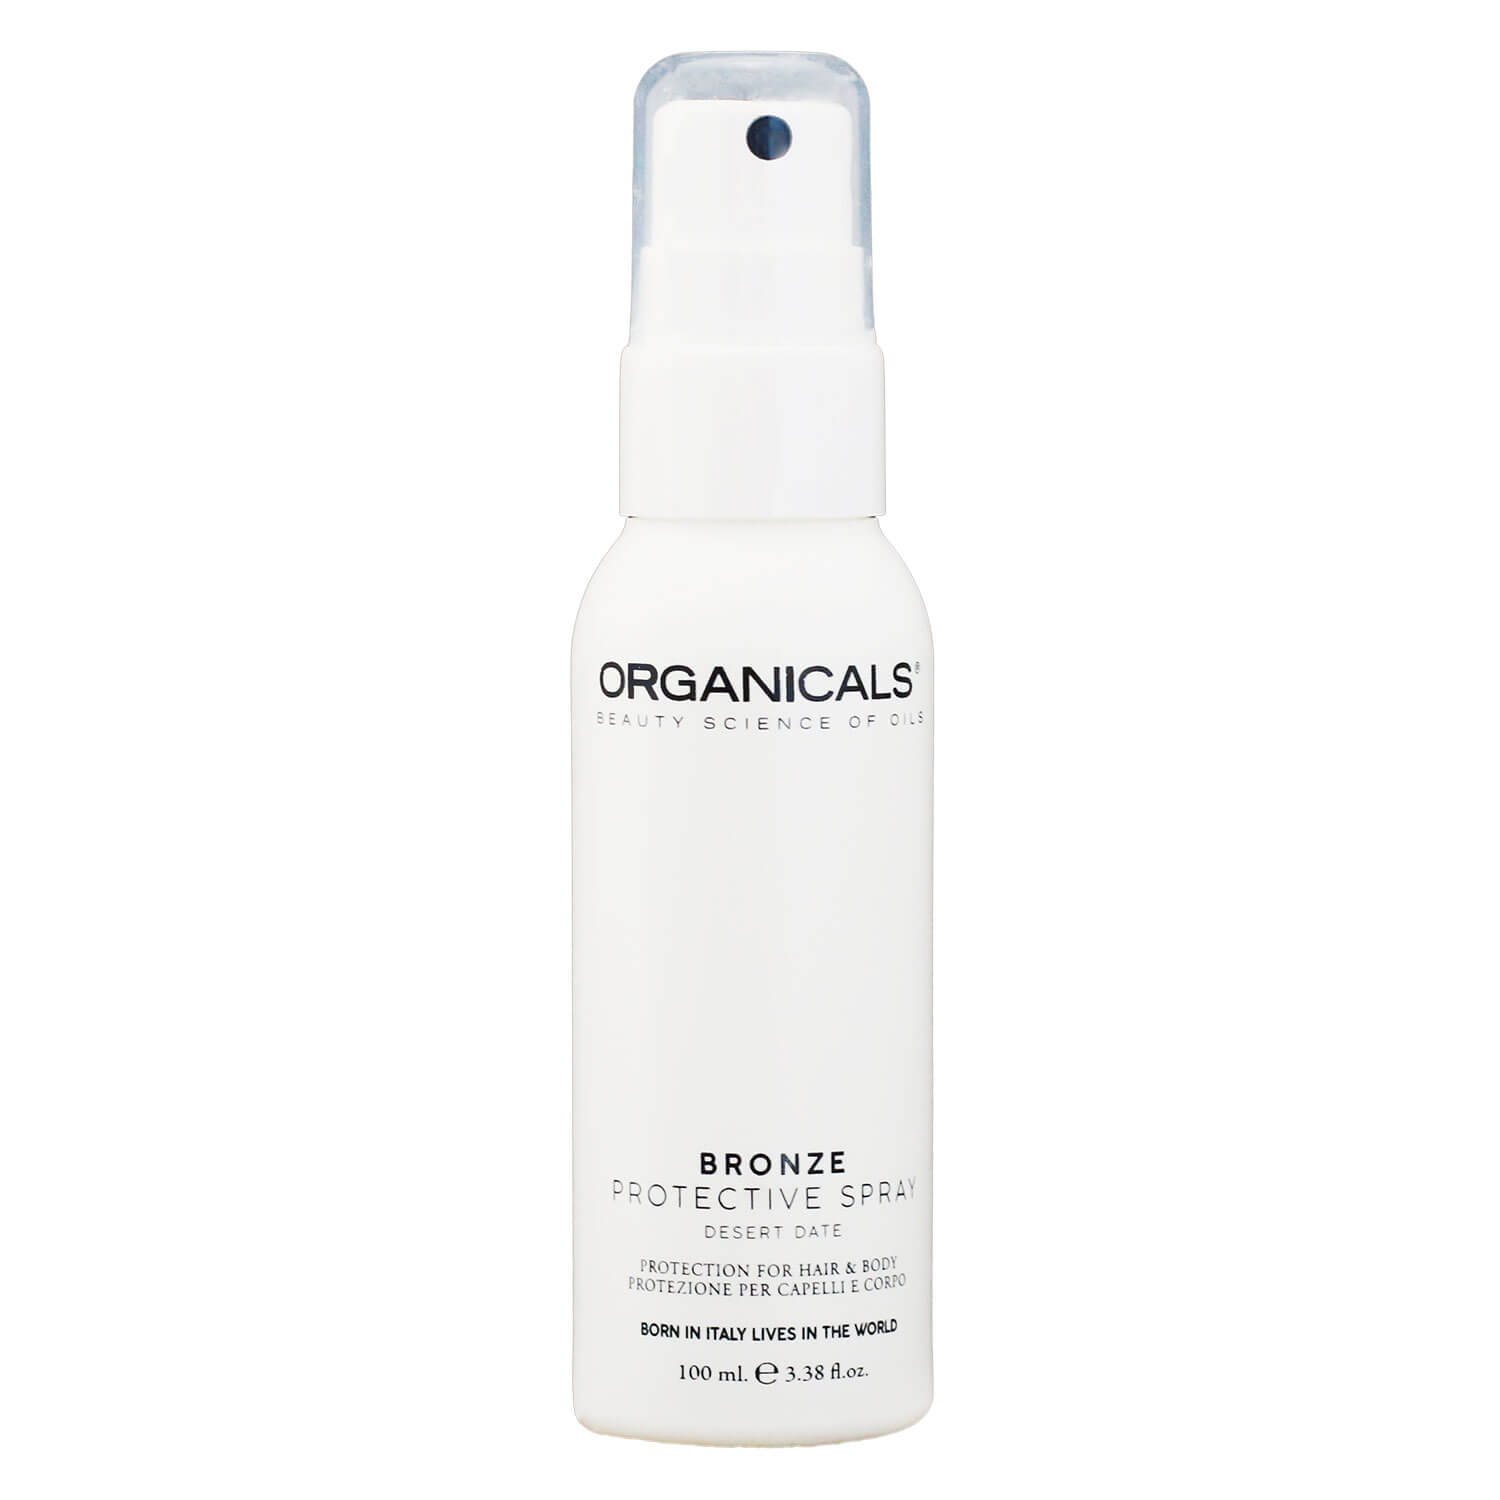 ORGANICALS - Bronze Protective Spray